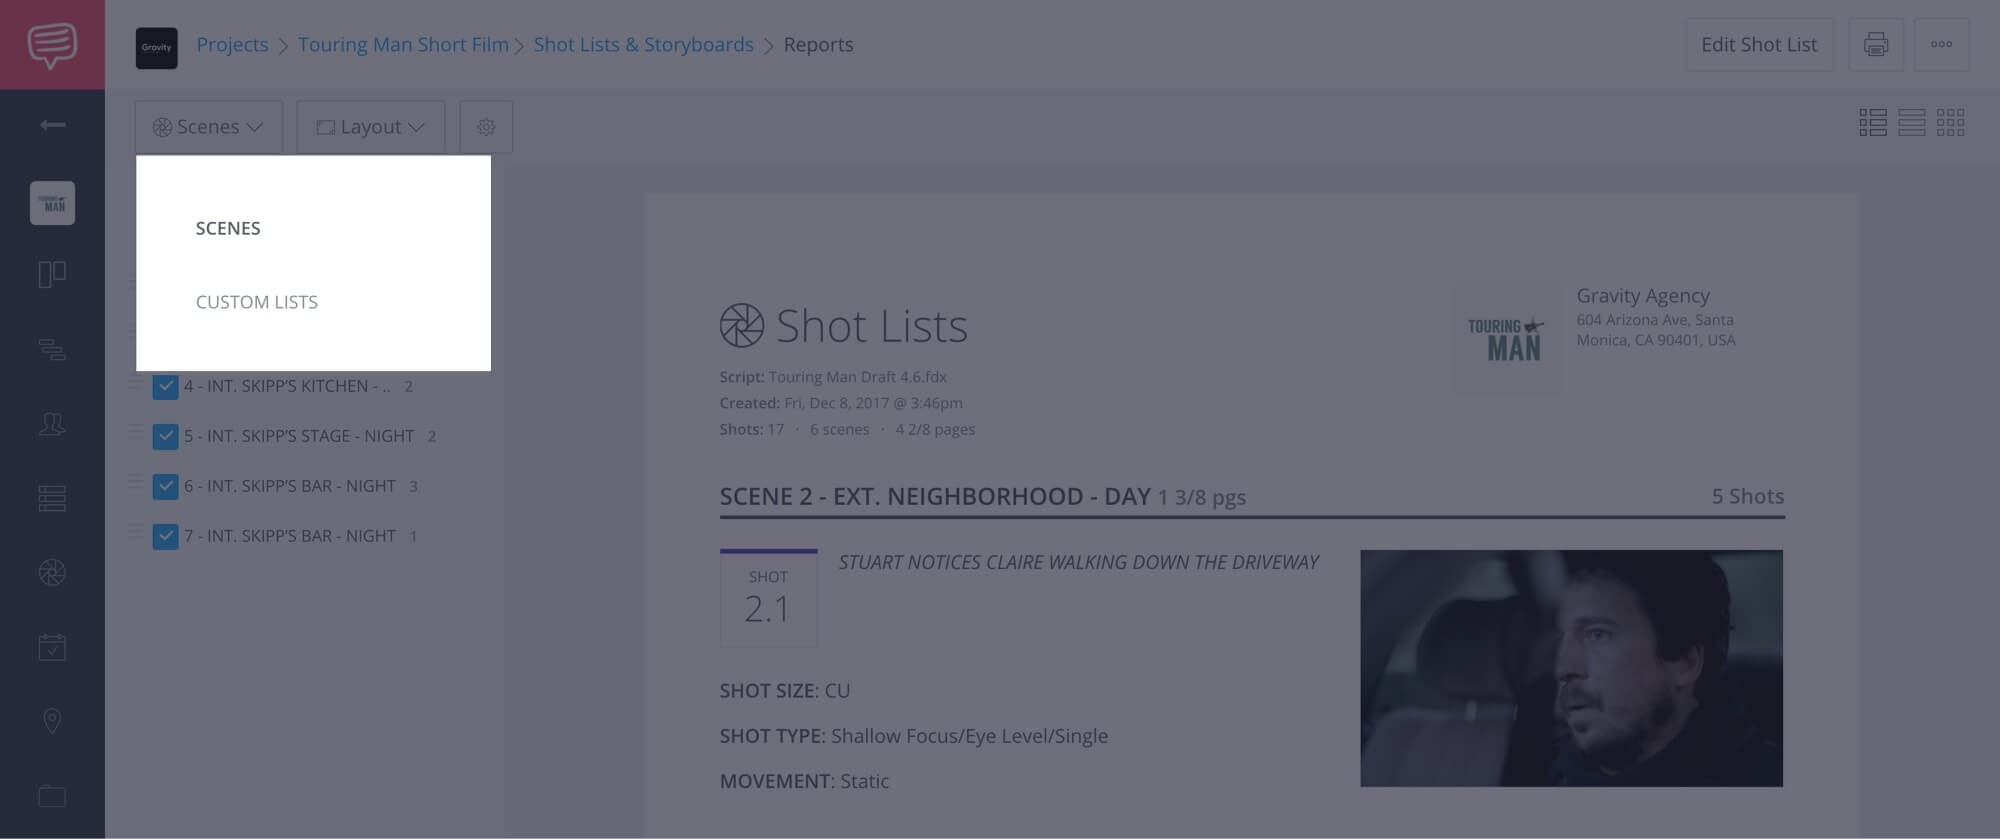 How to Create a Shot List with StudioBinder - Shot List Creator Template - 21